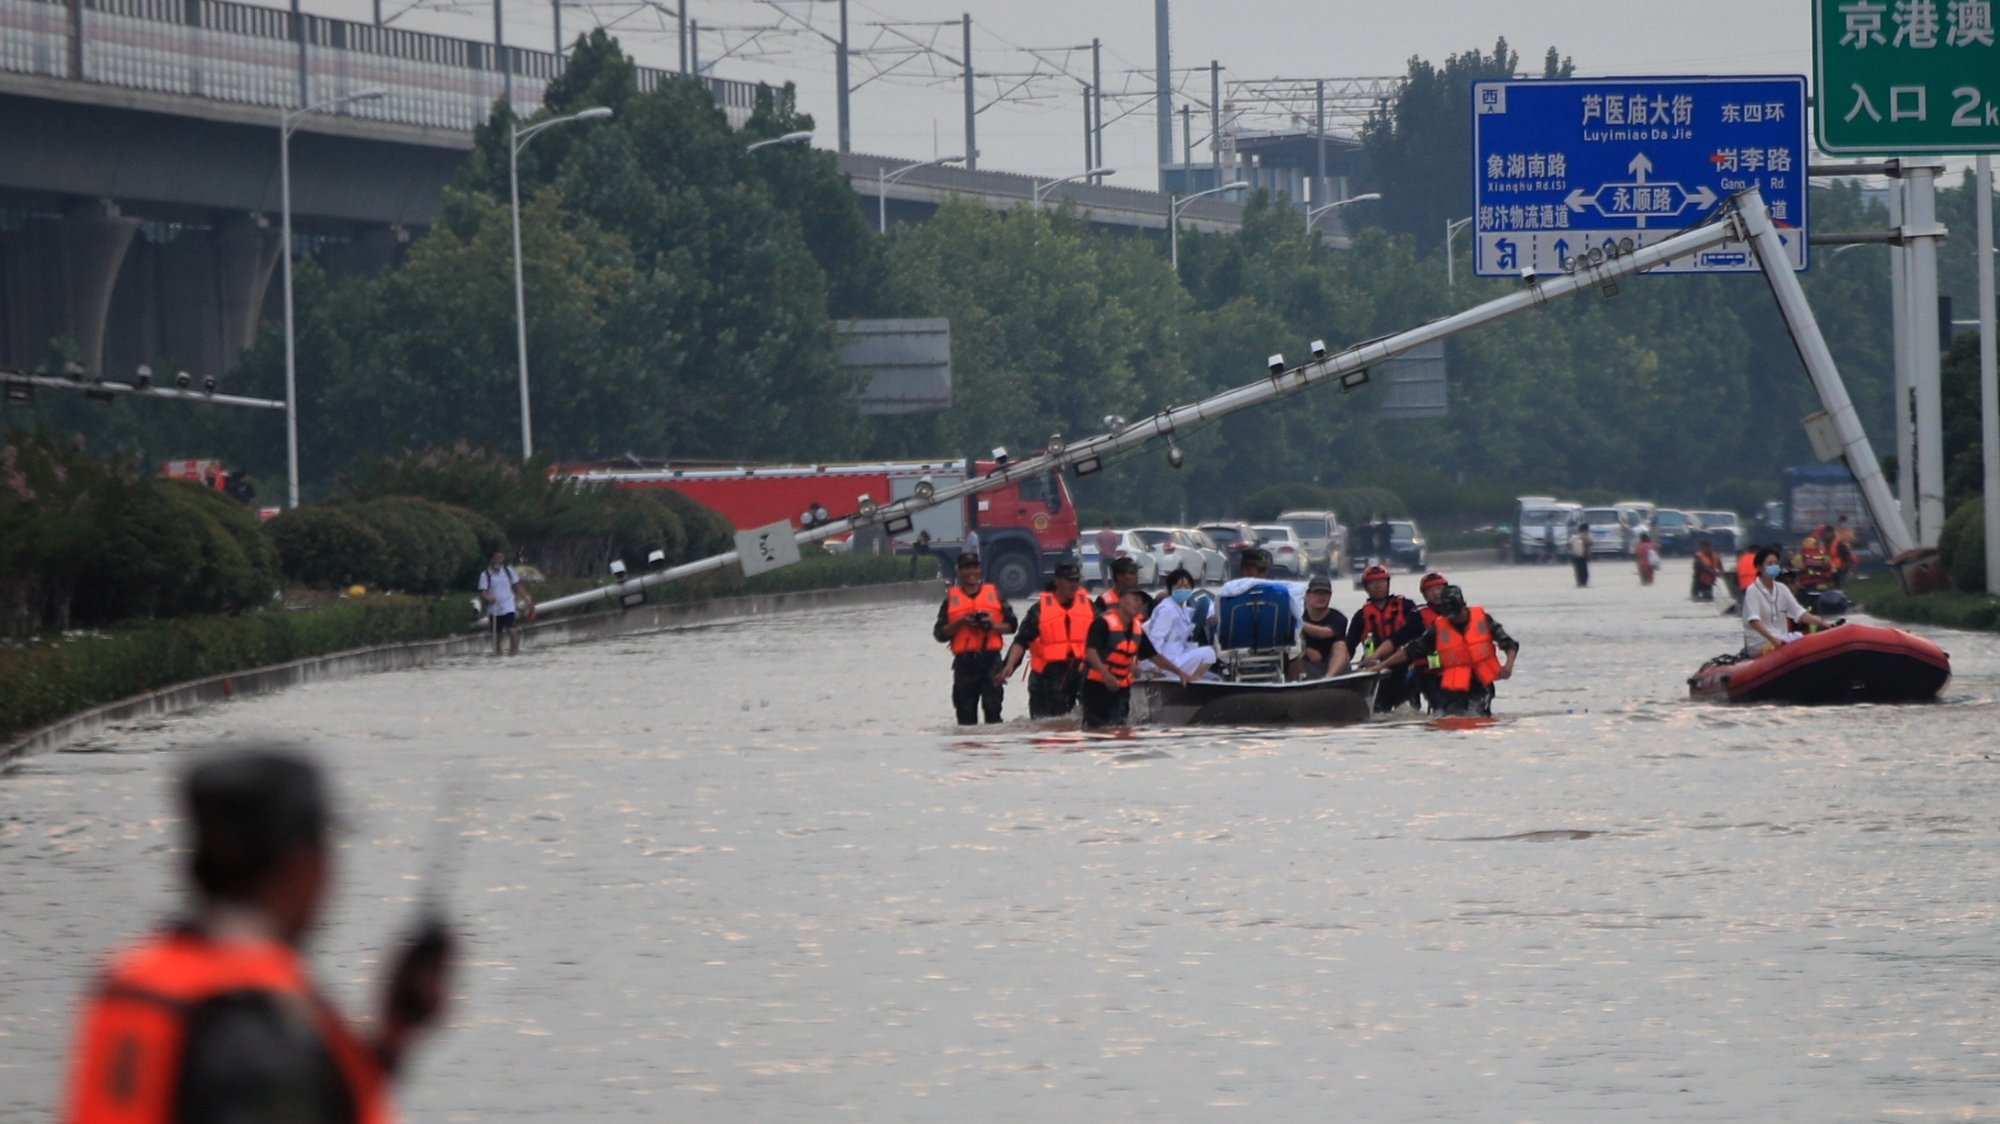 epa09358199 Rescuers evacuate people from a hospital where about 3,000 people were trapped by the flood in Zhengzhou, central China's Henan province, 22 July 2021. Thirty-three people were found dead in the flooding, and eight more are missing.  EPA/STRINGER CHINA OUT